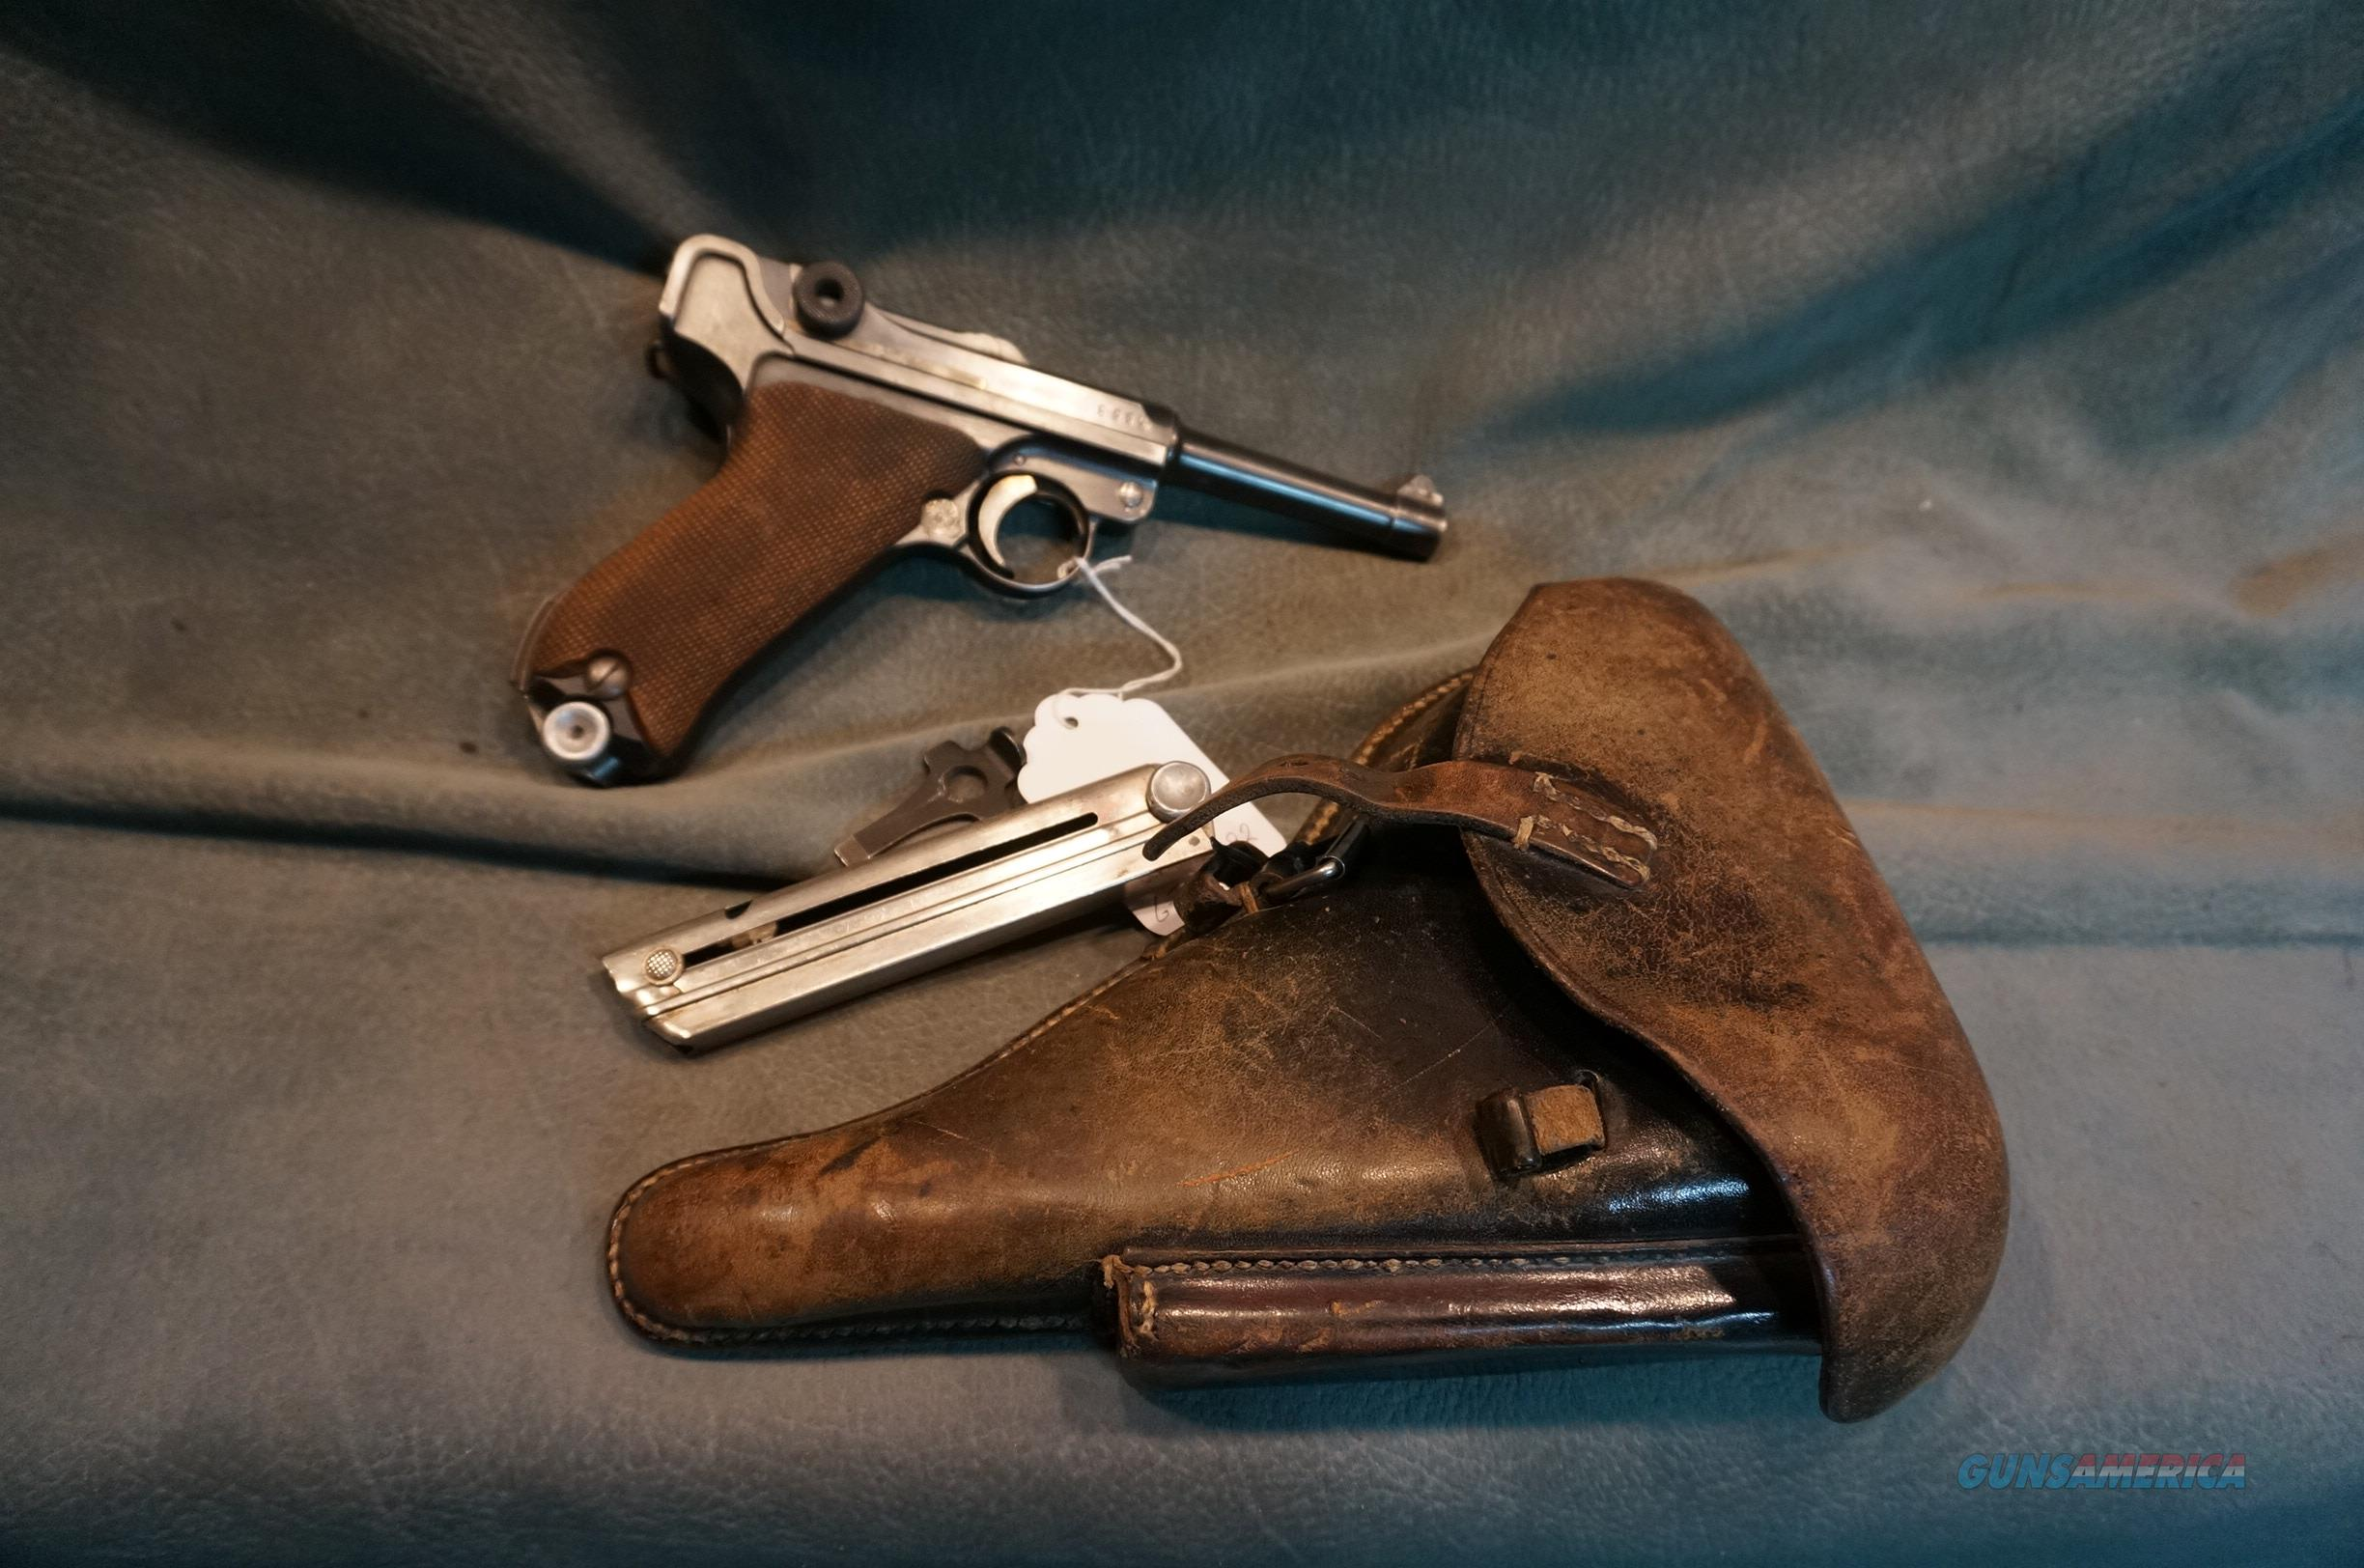 1916 DWM Luger 9mm with 2 magazines and holster  Guns > Pistols > Luger Pistols